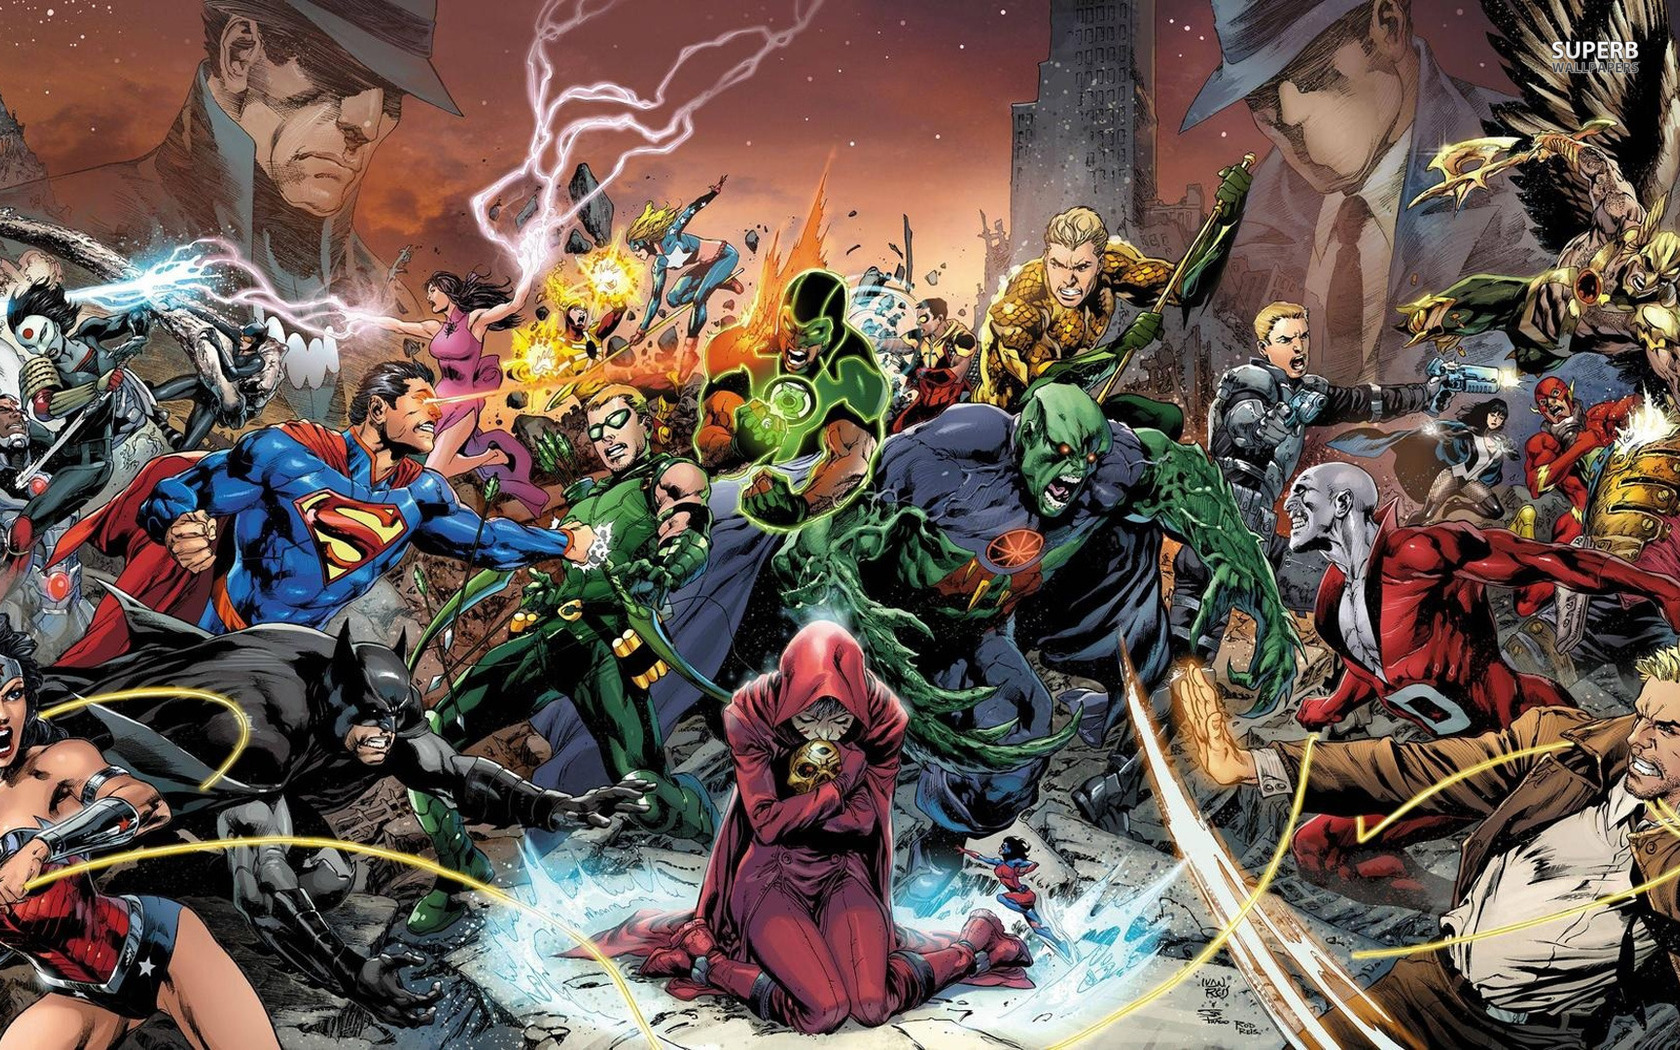 Hd wallpaper justice league - Justice League Wallpapers Hd Wallpapers Early